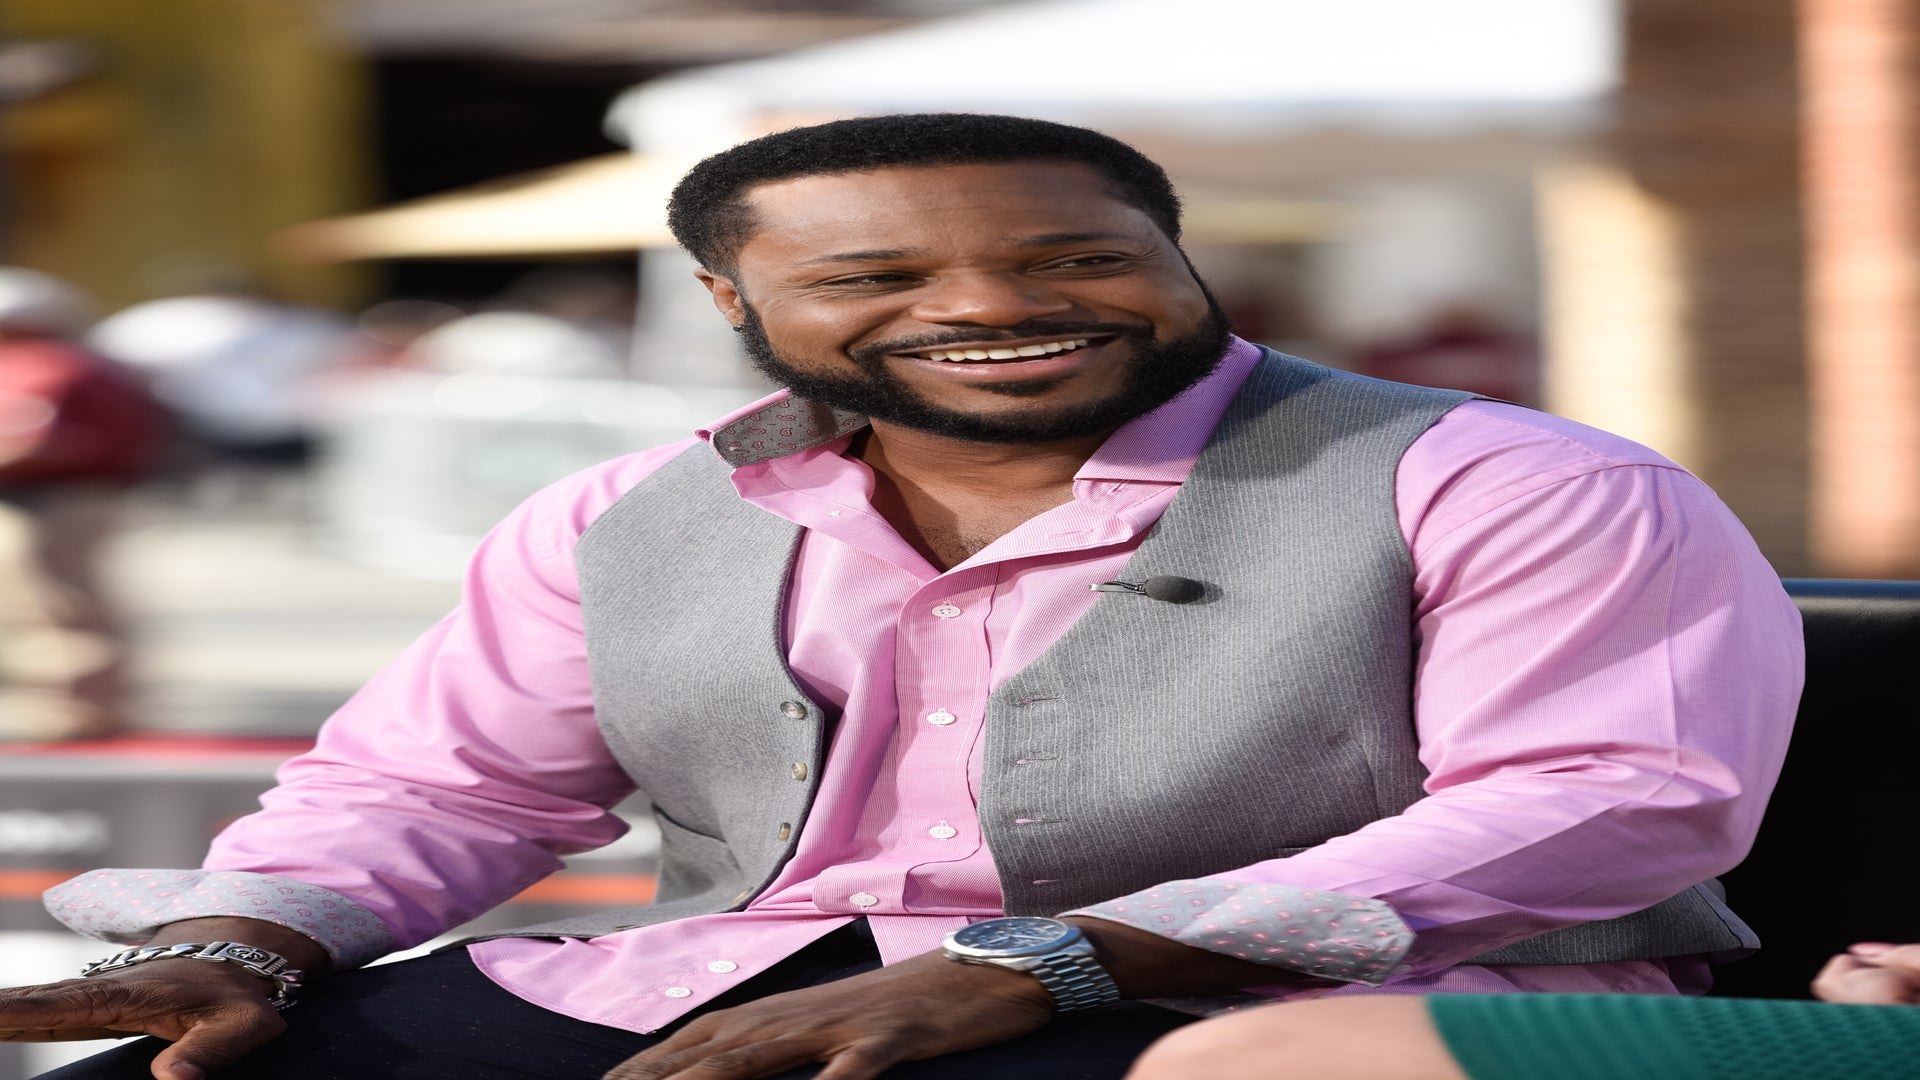 Malcolm Jamal Warner Is A New Father Essence Karen malina white husb/wife and children. malcolm jamal warner is a new father